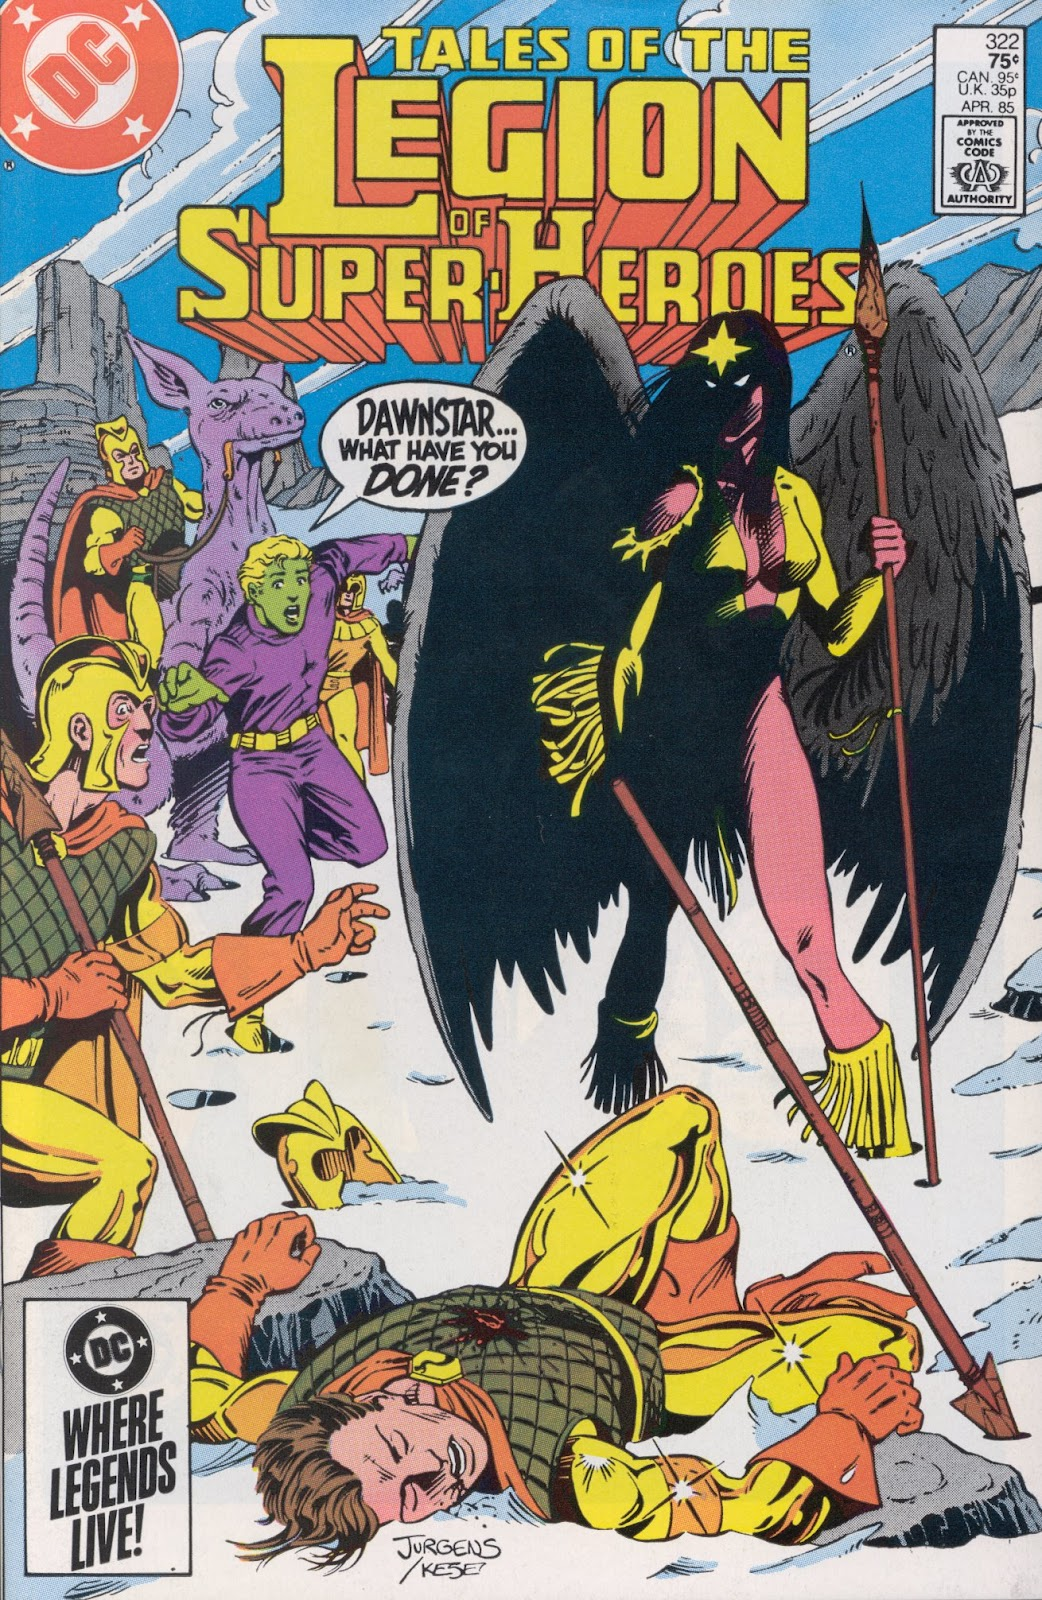 Tales of the Legion Issue #322 #9 - English 1